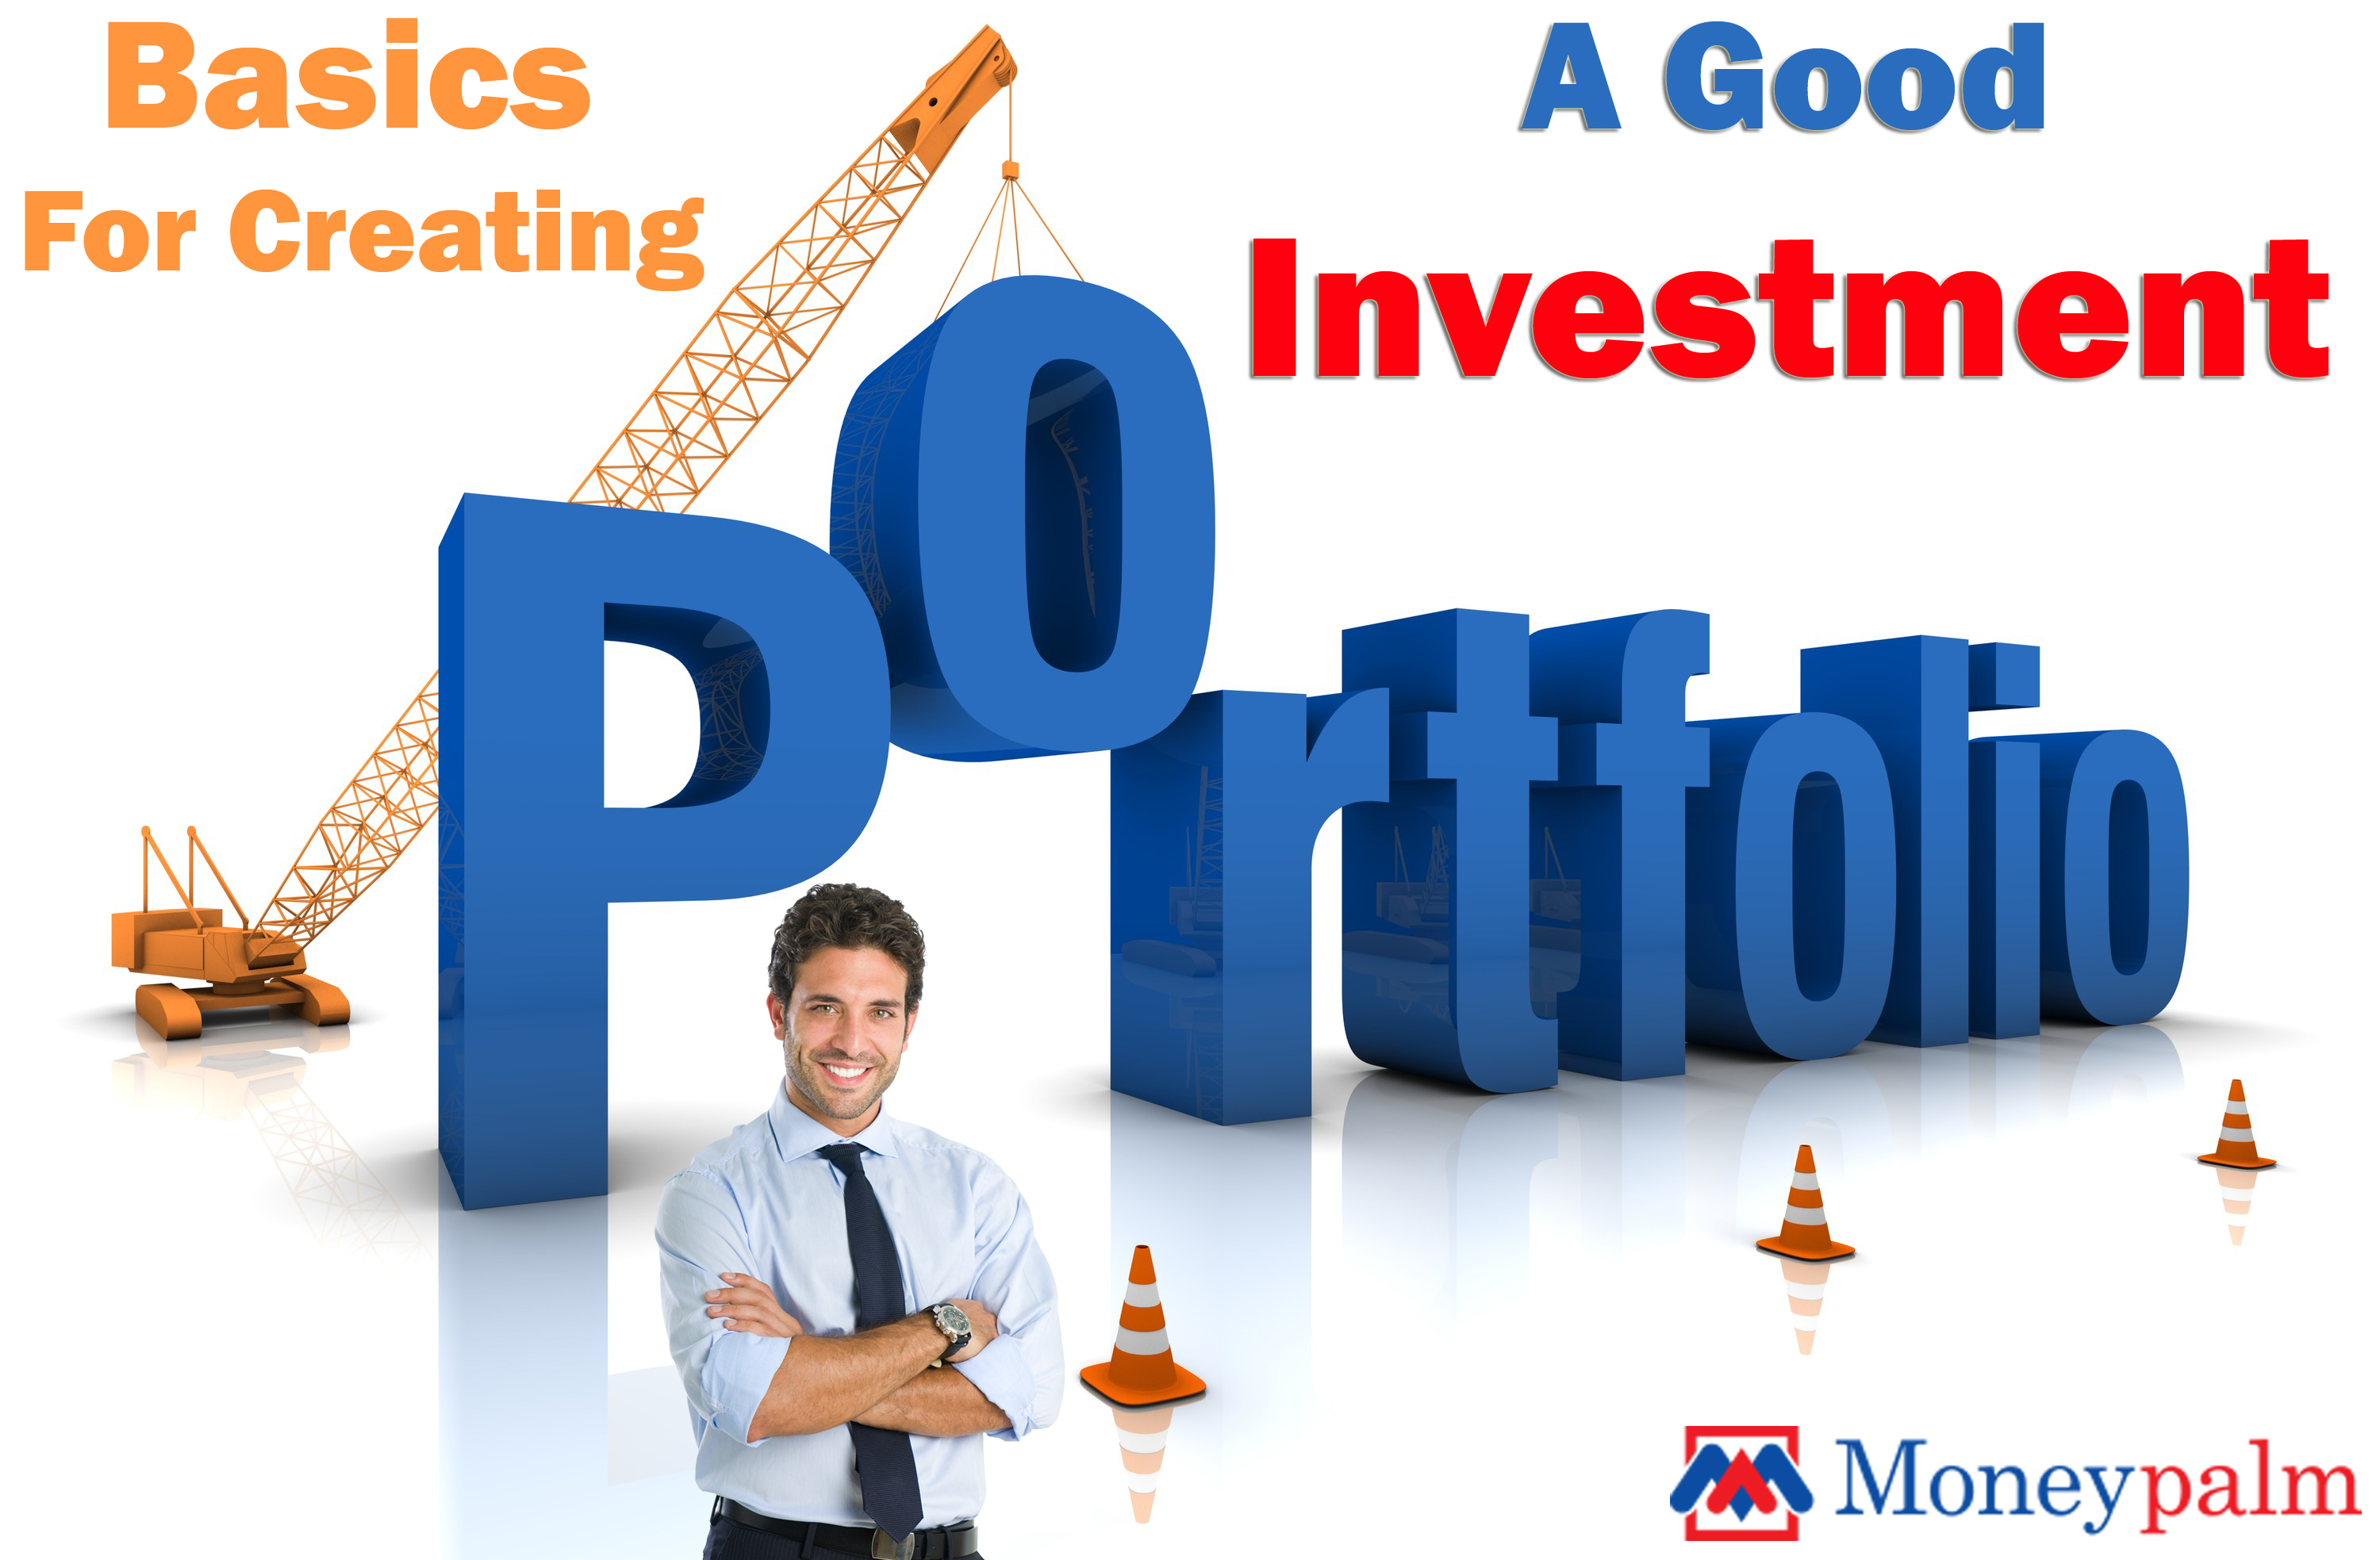 Basics for creating a Good Investment Portfolio